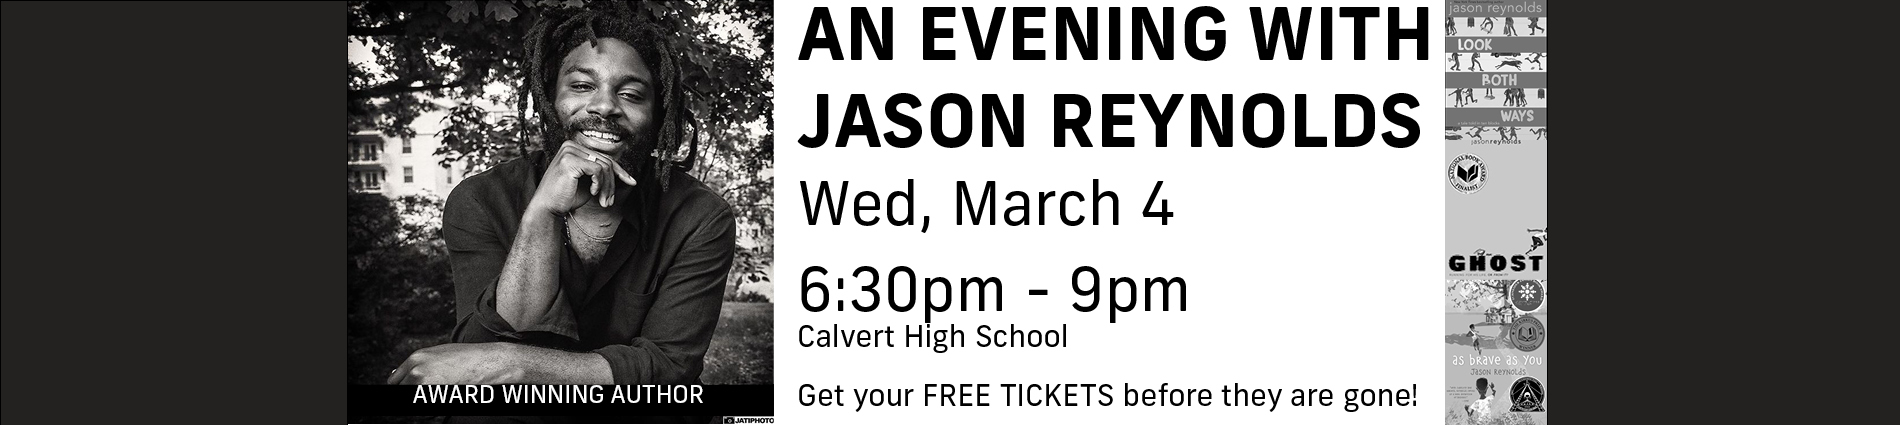 AN EVENING WITH JASON REYNOLDS Wed, March 4 free tickets needed